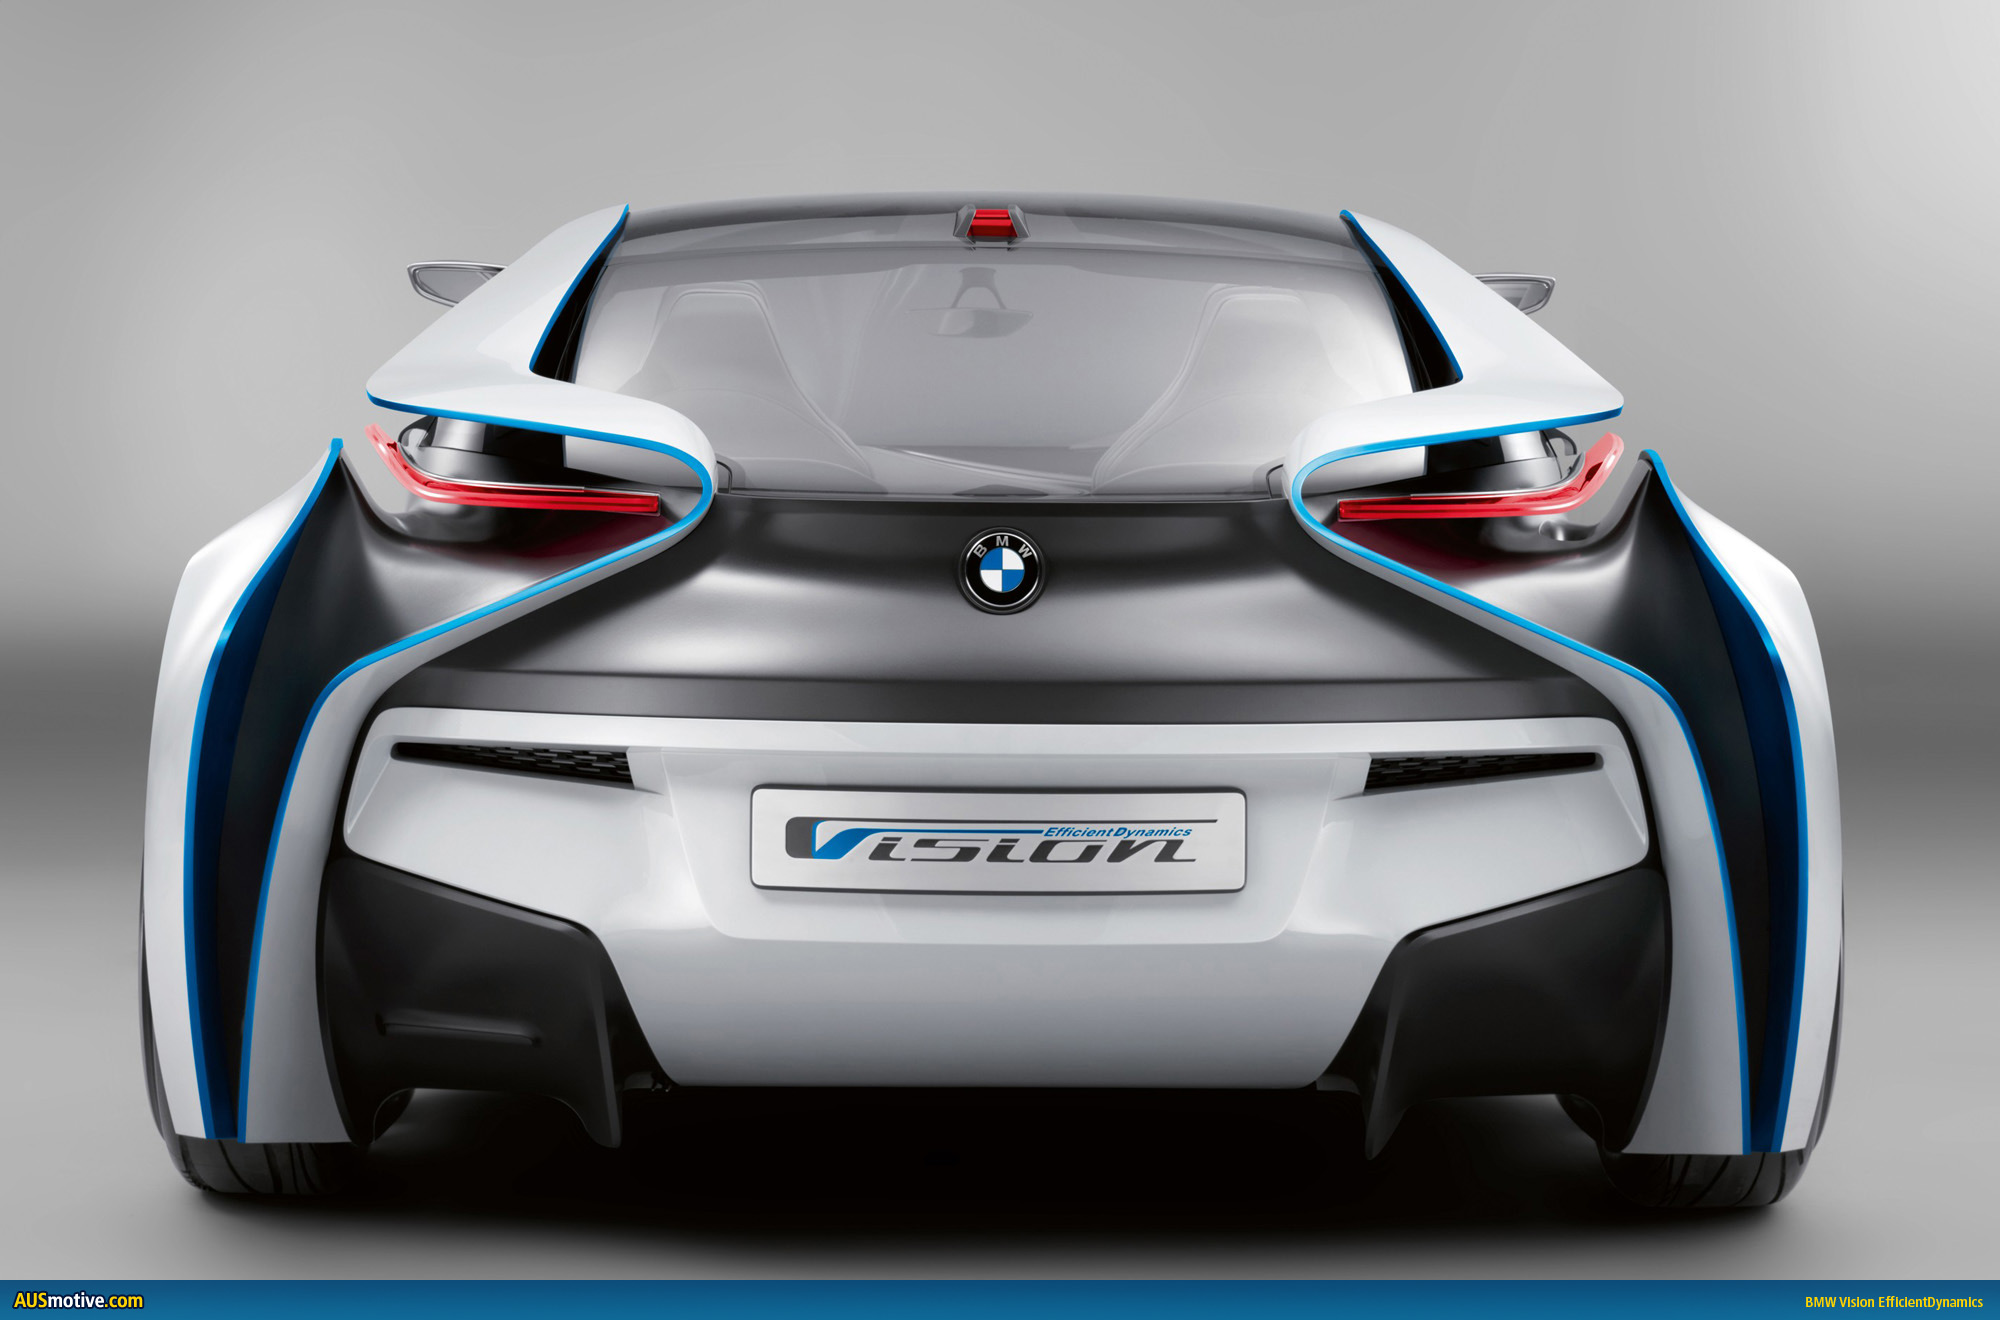 AUSmotive.com » BMW Vision EfficientDynamics – image gallery